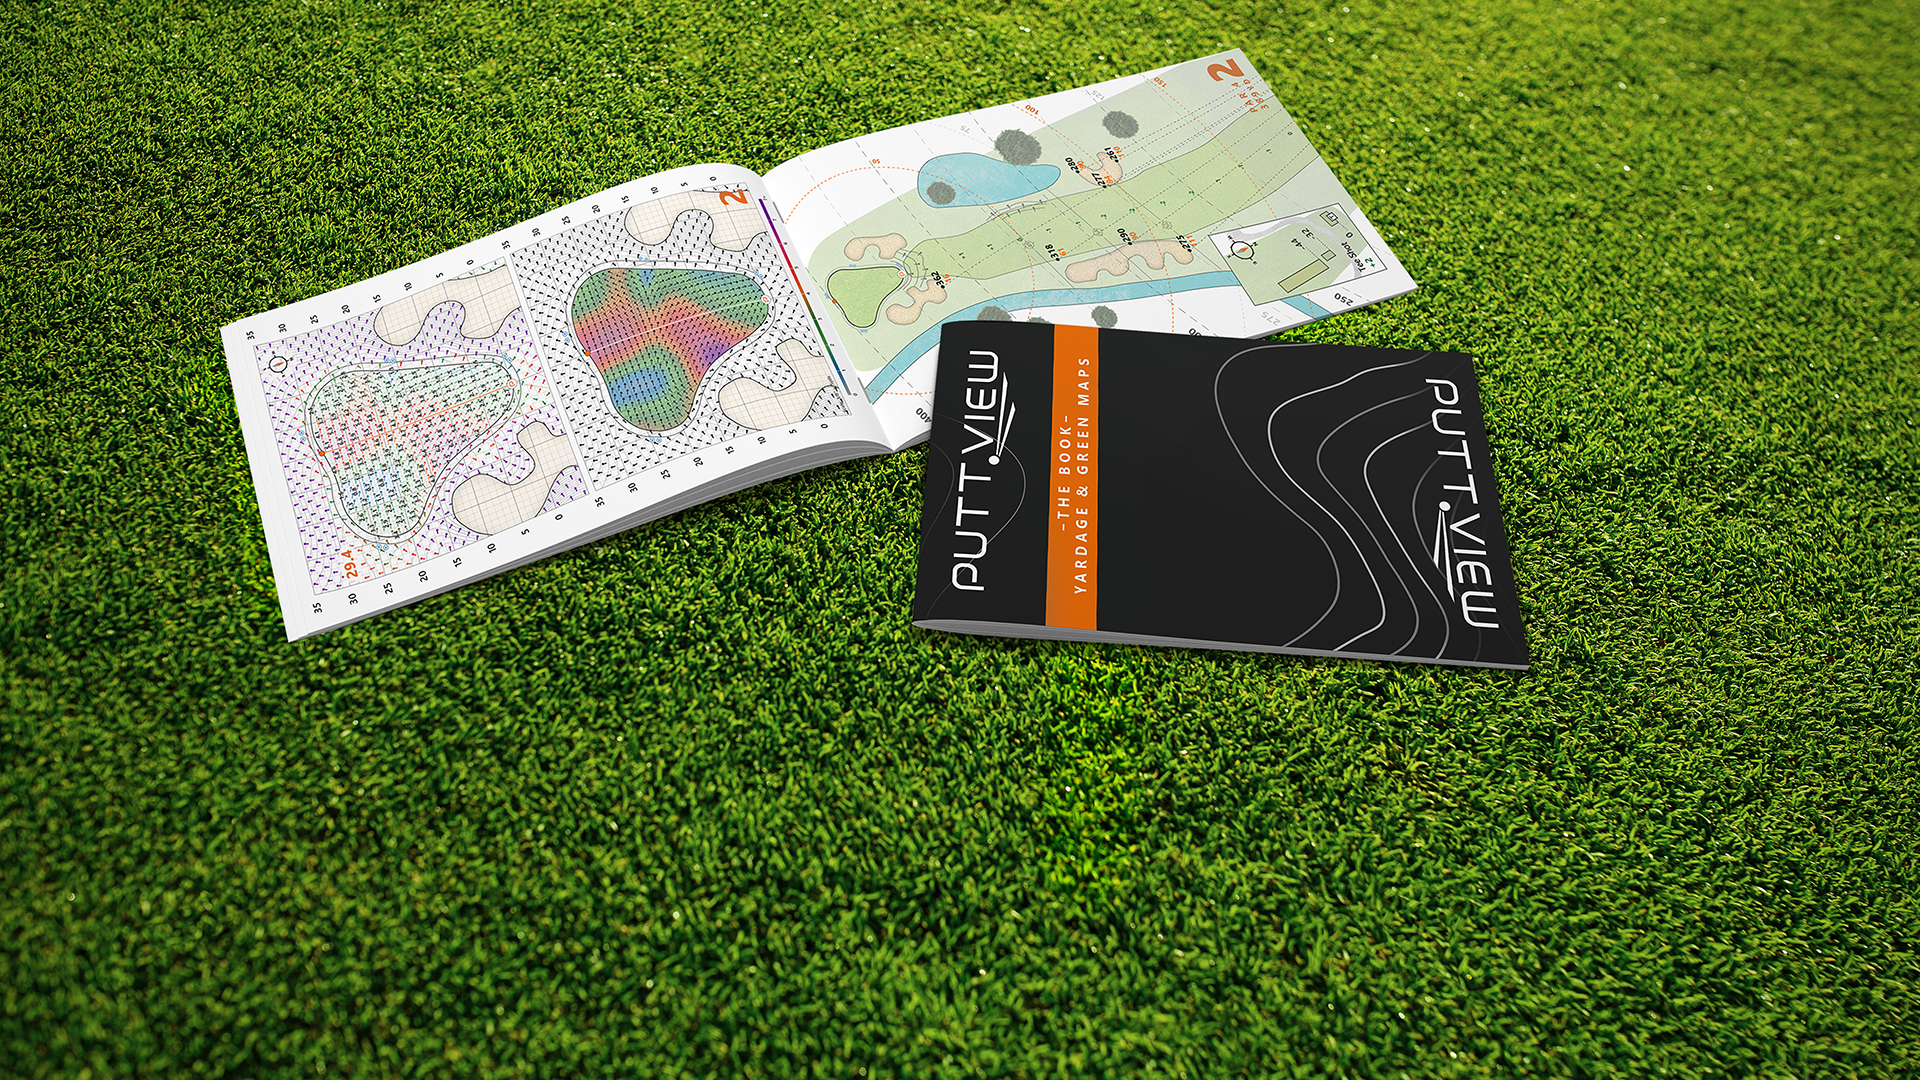 PuttView Books is the newest addition to the company's portfolio. The yardage and green books are USGA Legal and were developed with the help of Phil Kenyon . © puttview.com